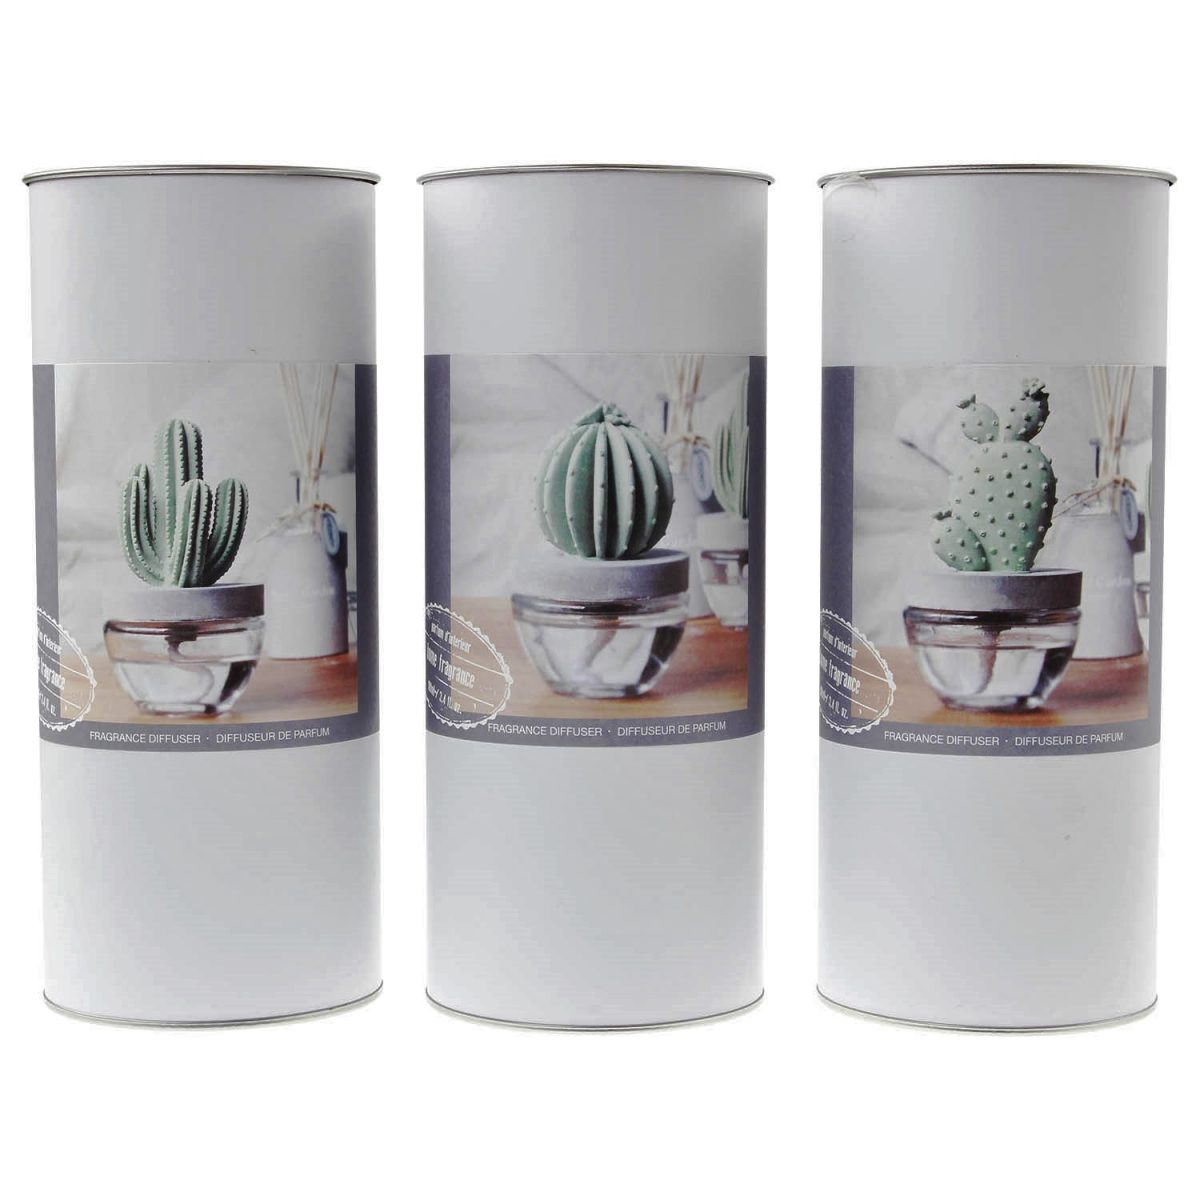 100ml Cactus Oil Scented Fragrance Diffuser Natural Aromatherapy Air Freshener